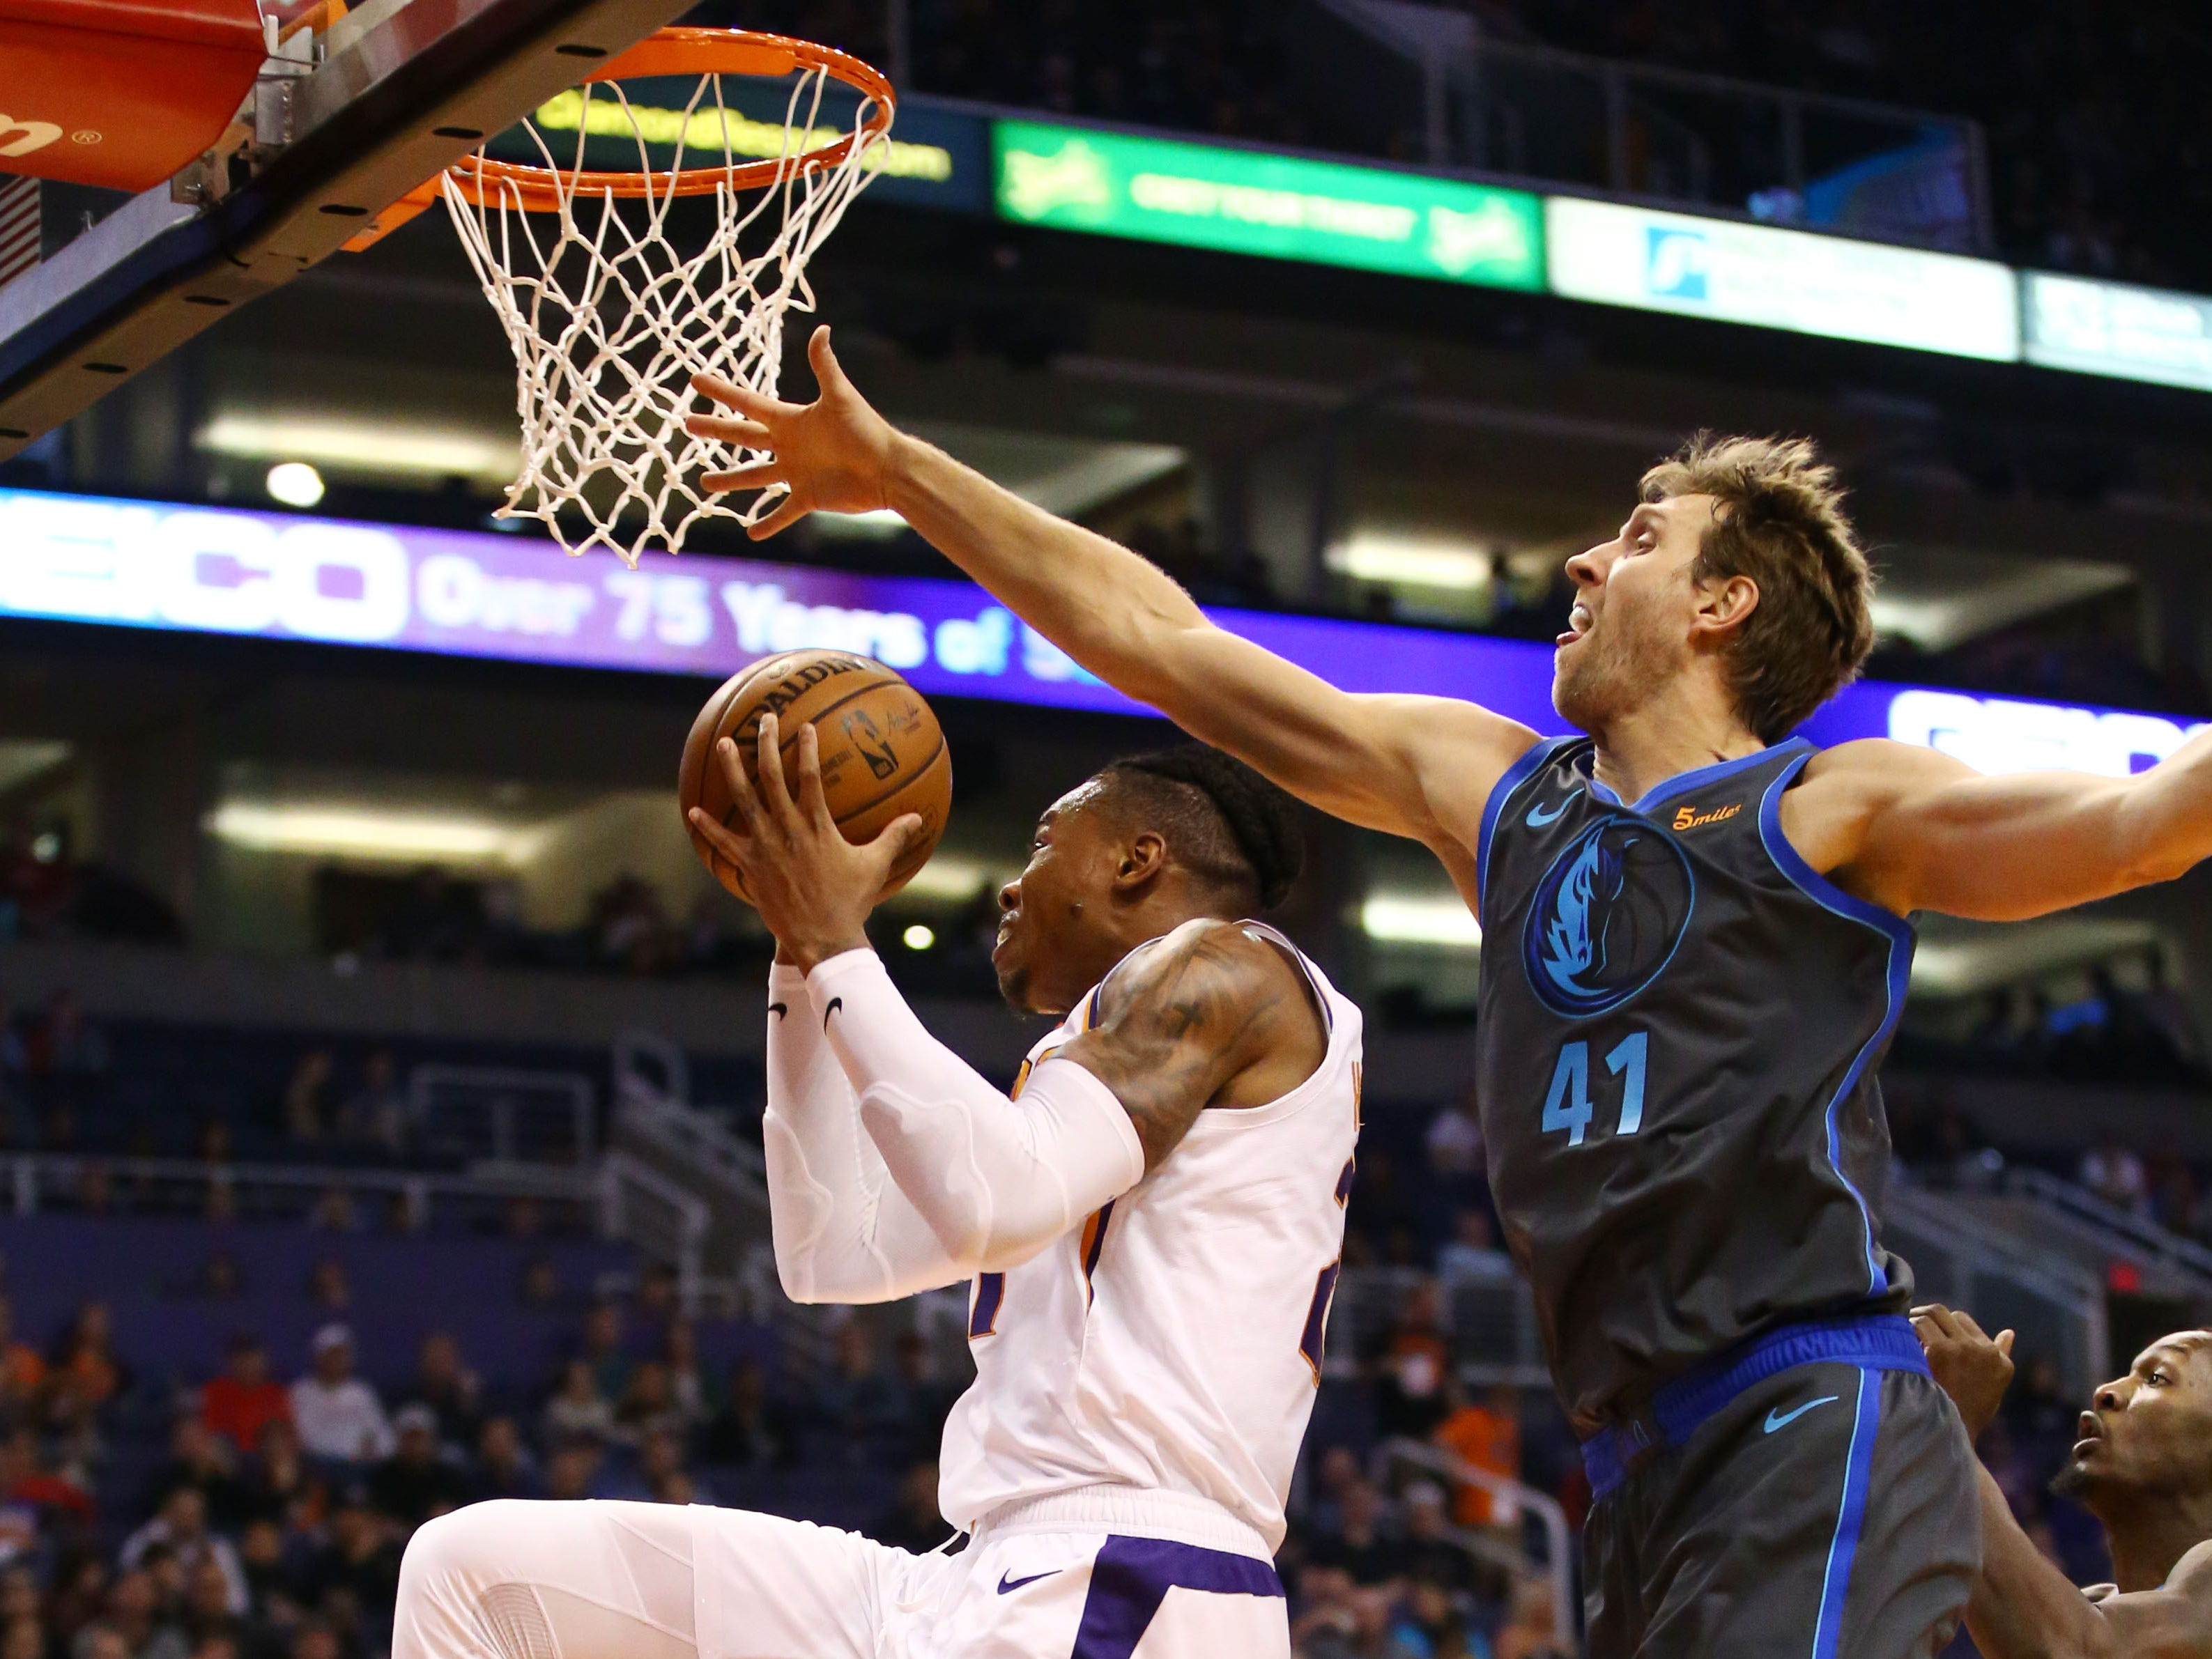 Phoenix Suns forward Richaun Holmes is pressured by Dallas Mavericks' Dirk Nowitzki during a game on Dec. 13 at Talking Stick Resort Arena.